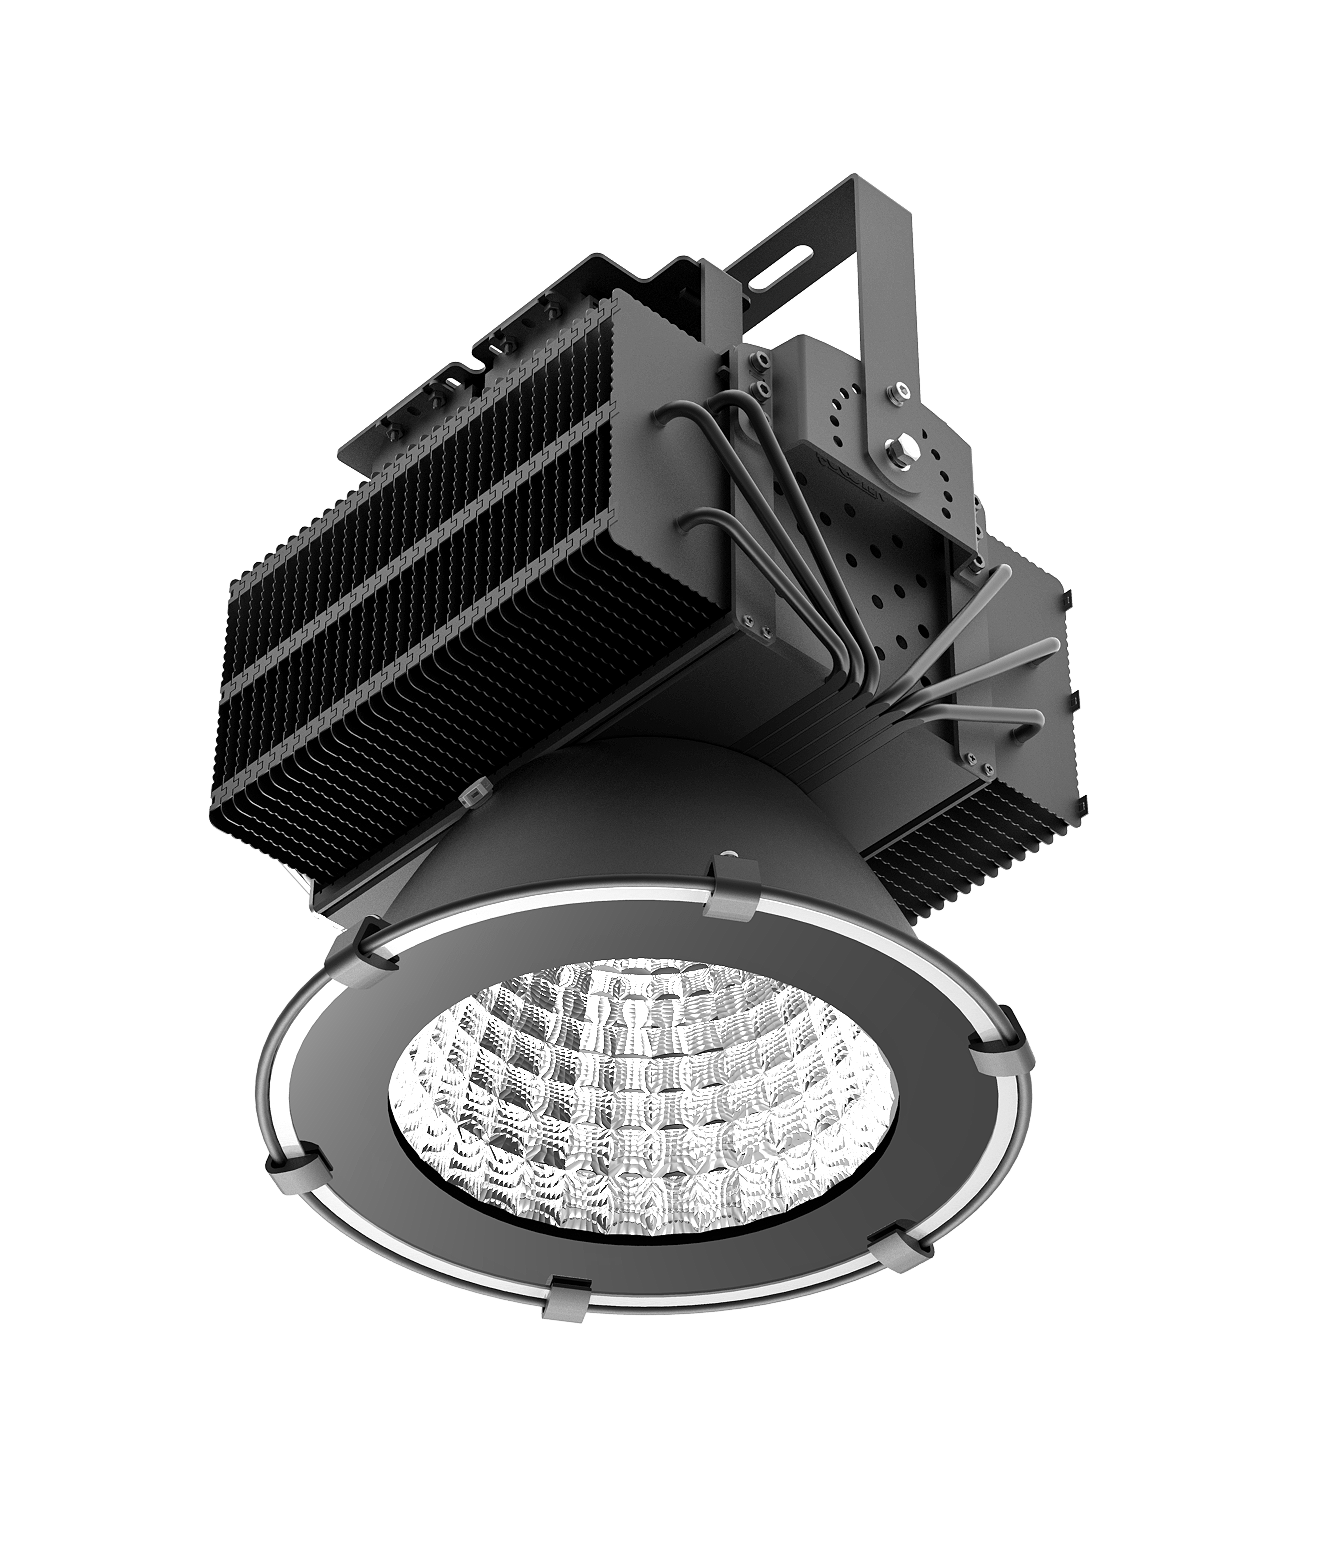 h series LED flood light